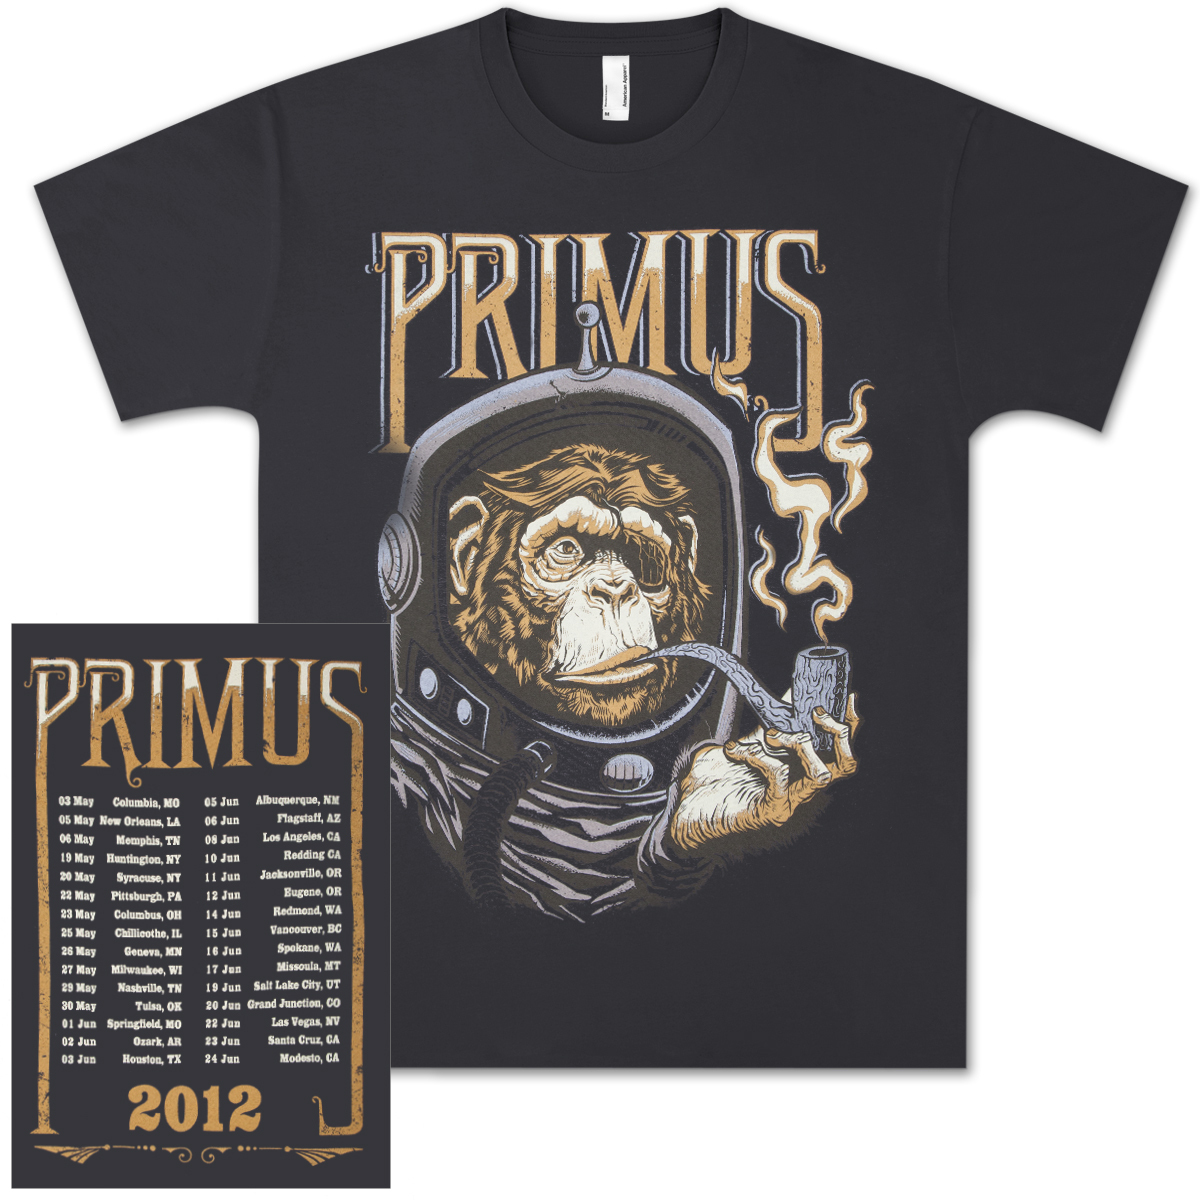 Primus 2012 North American Tour T-Shirt with Tour Dates